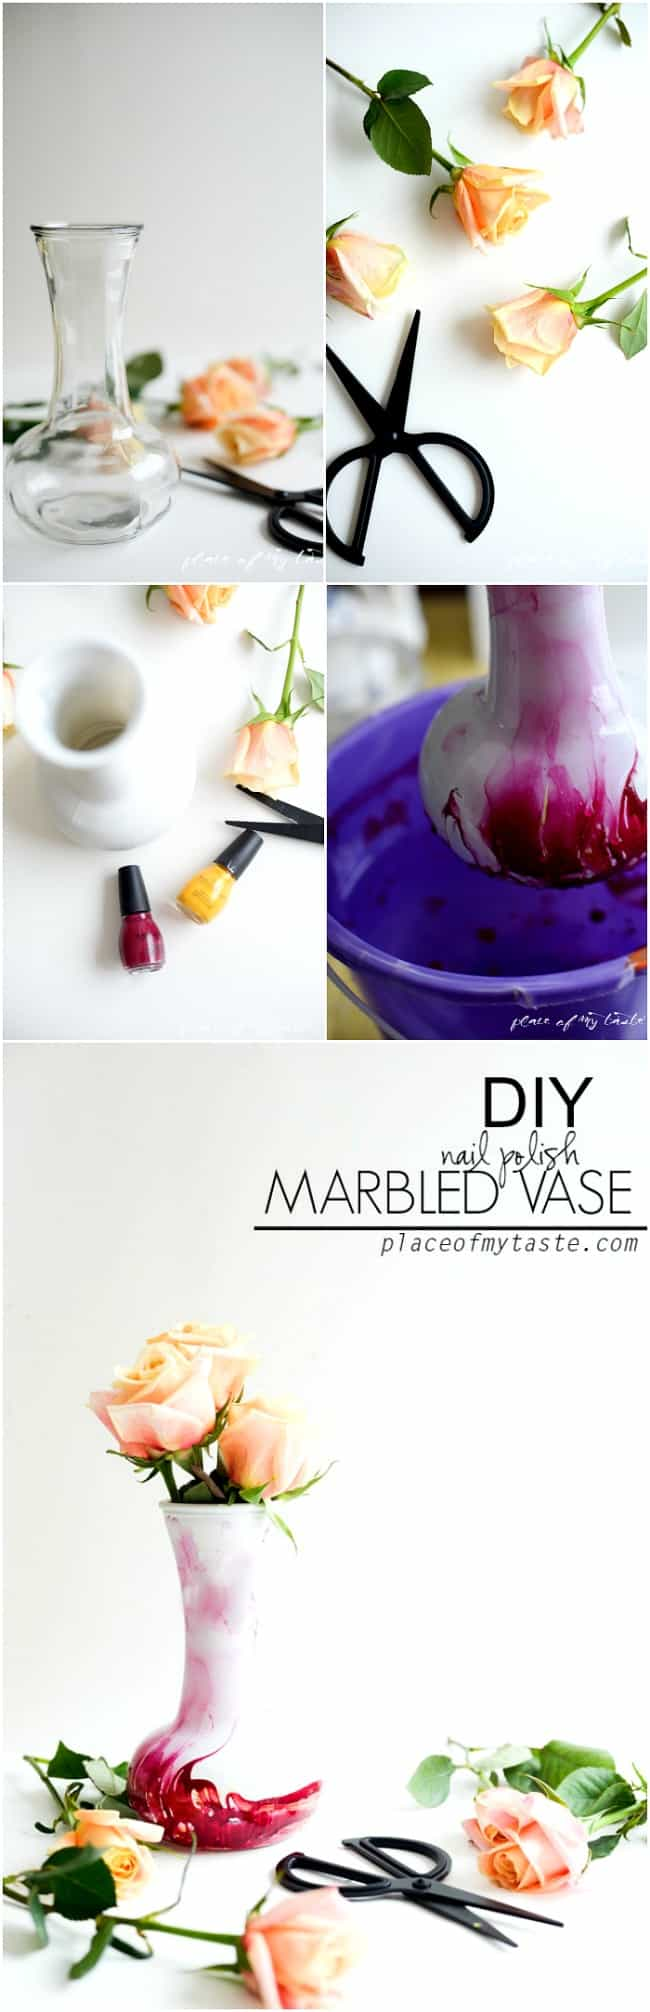 DIY marbled vase-